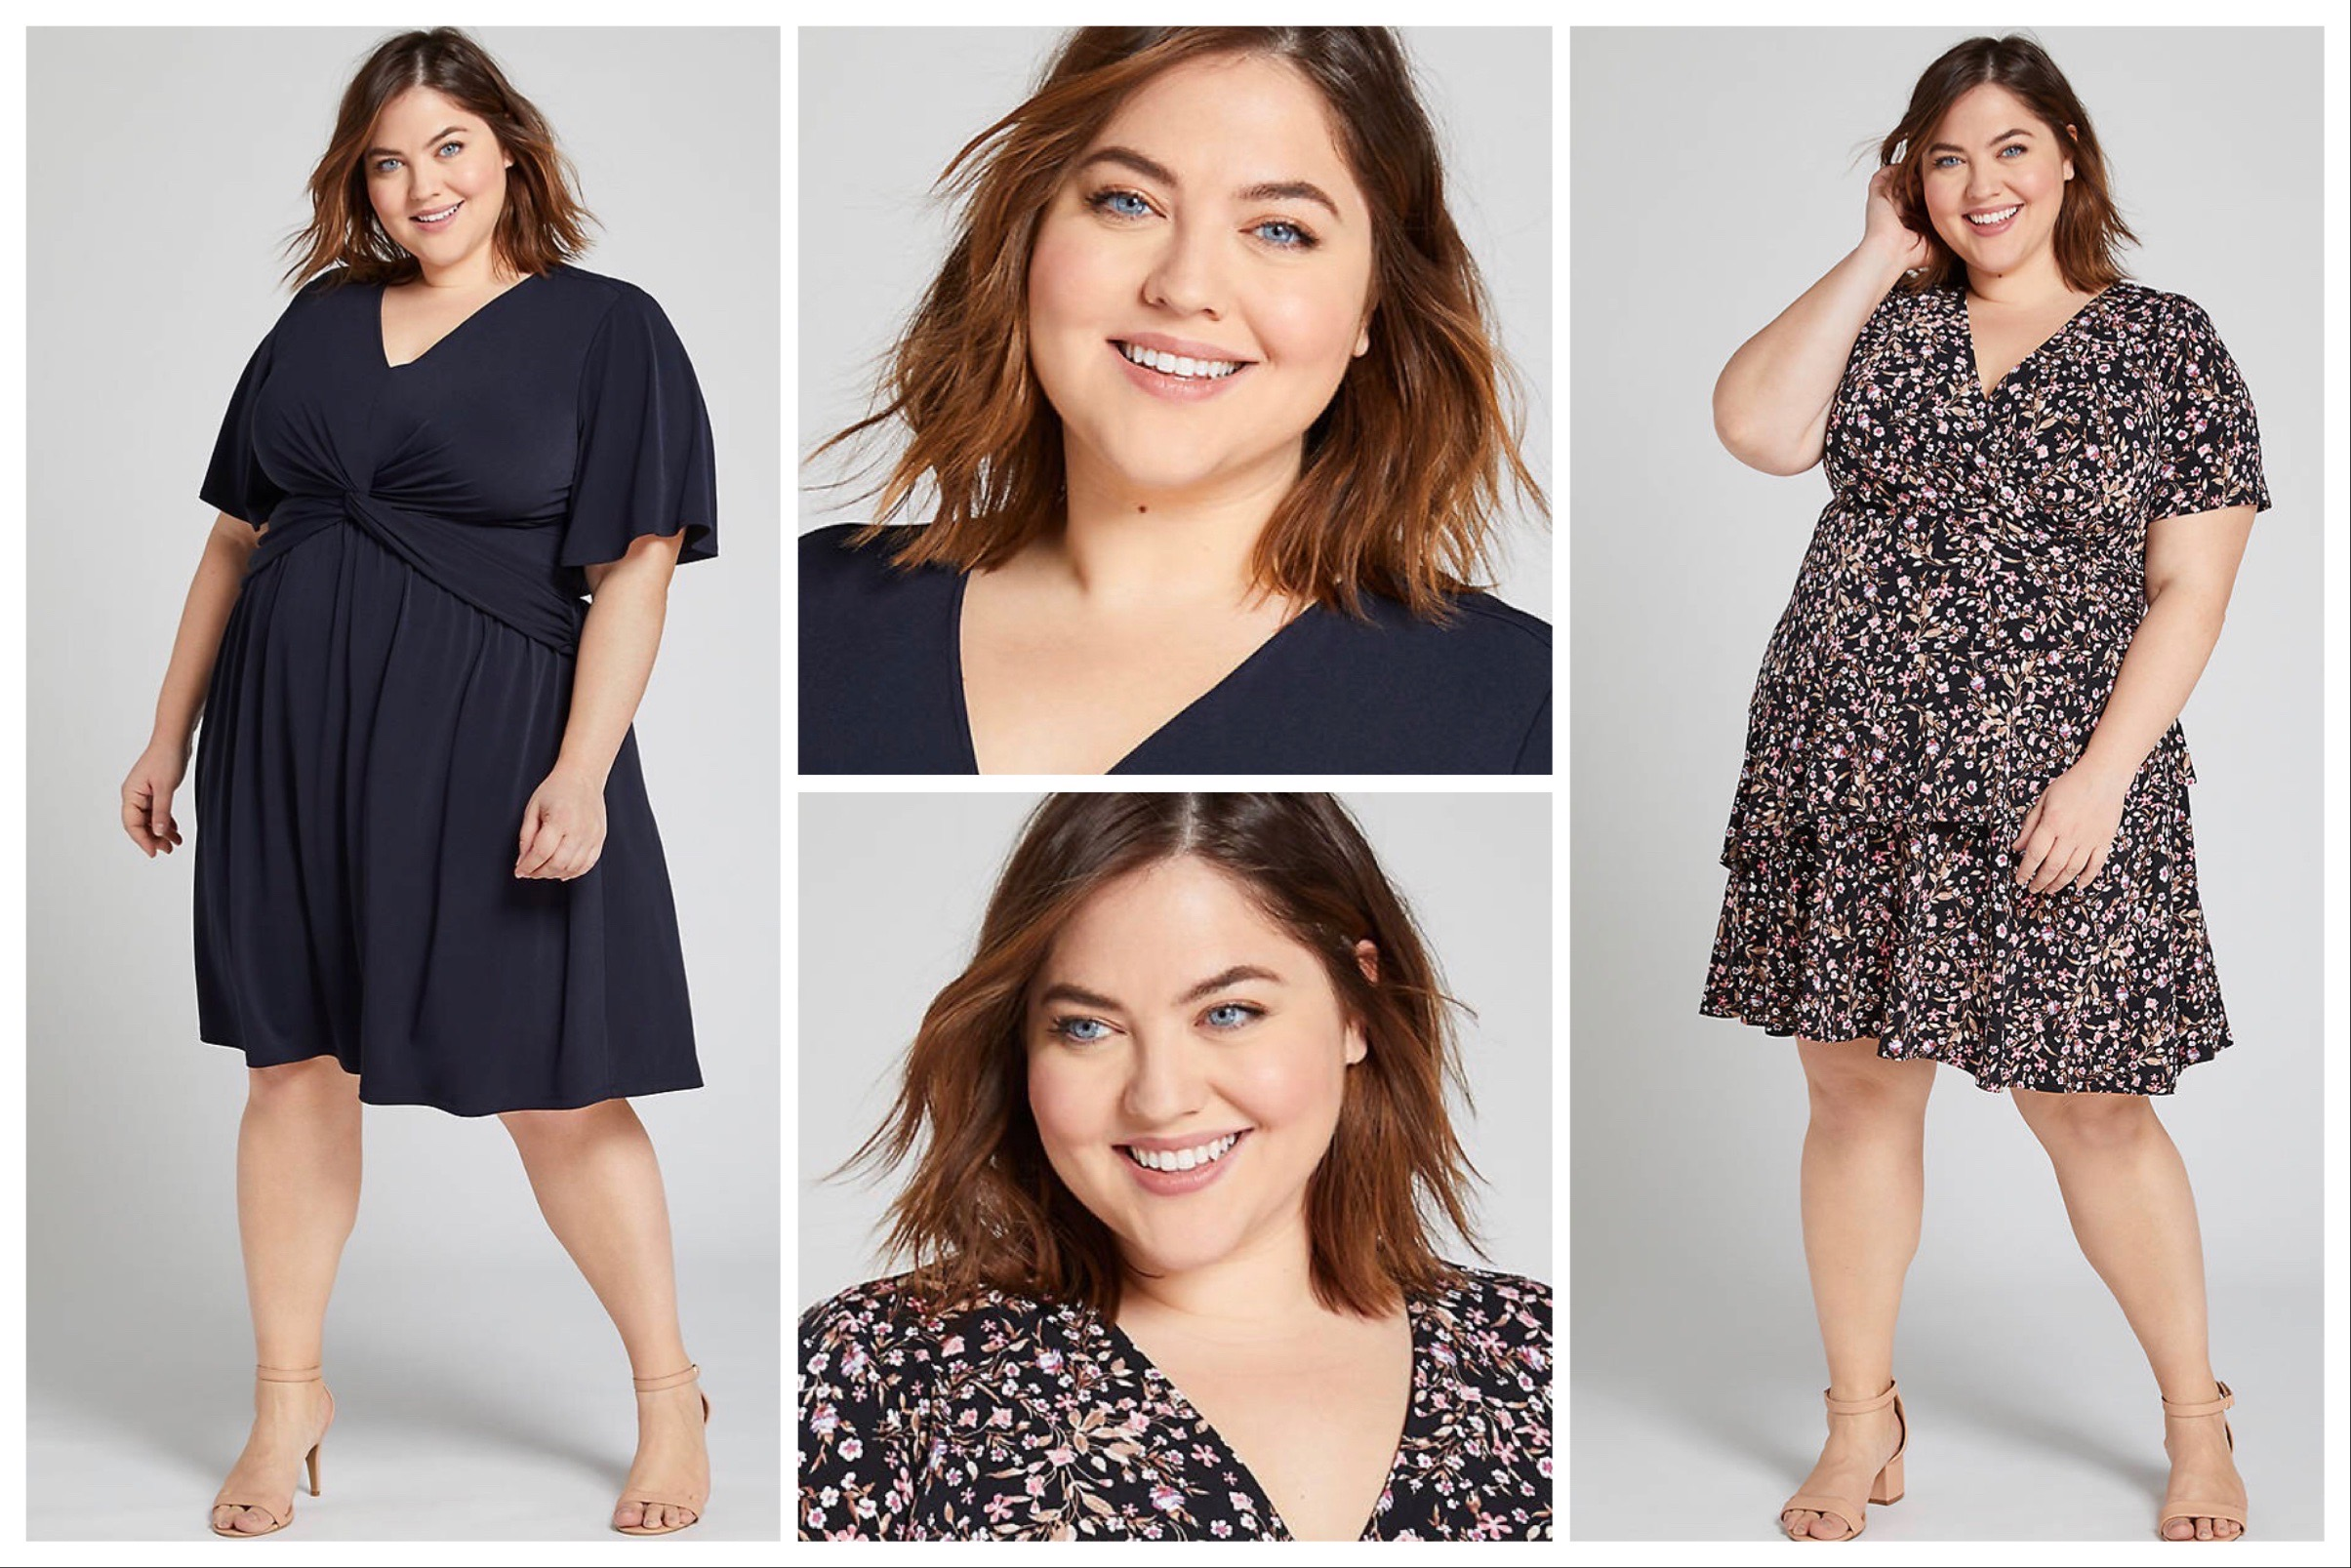 Makeup/Hair for Lane Bryant